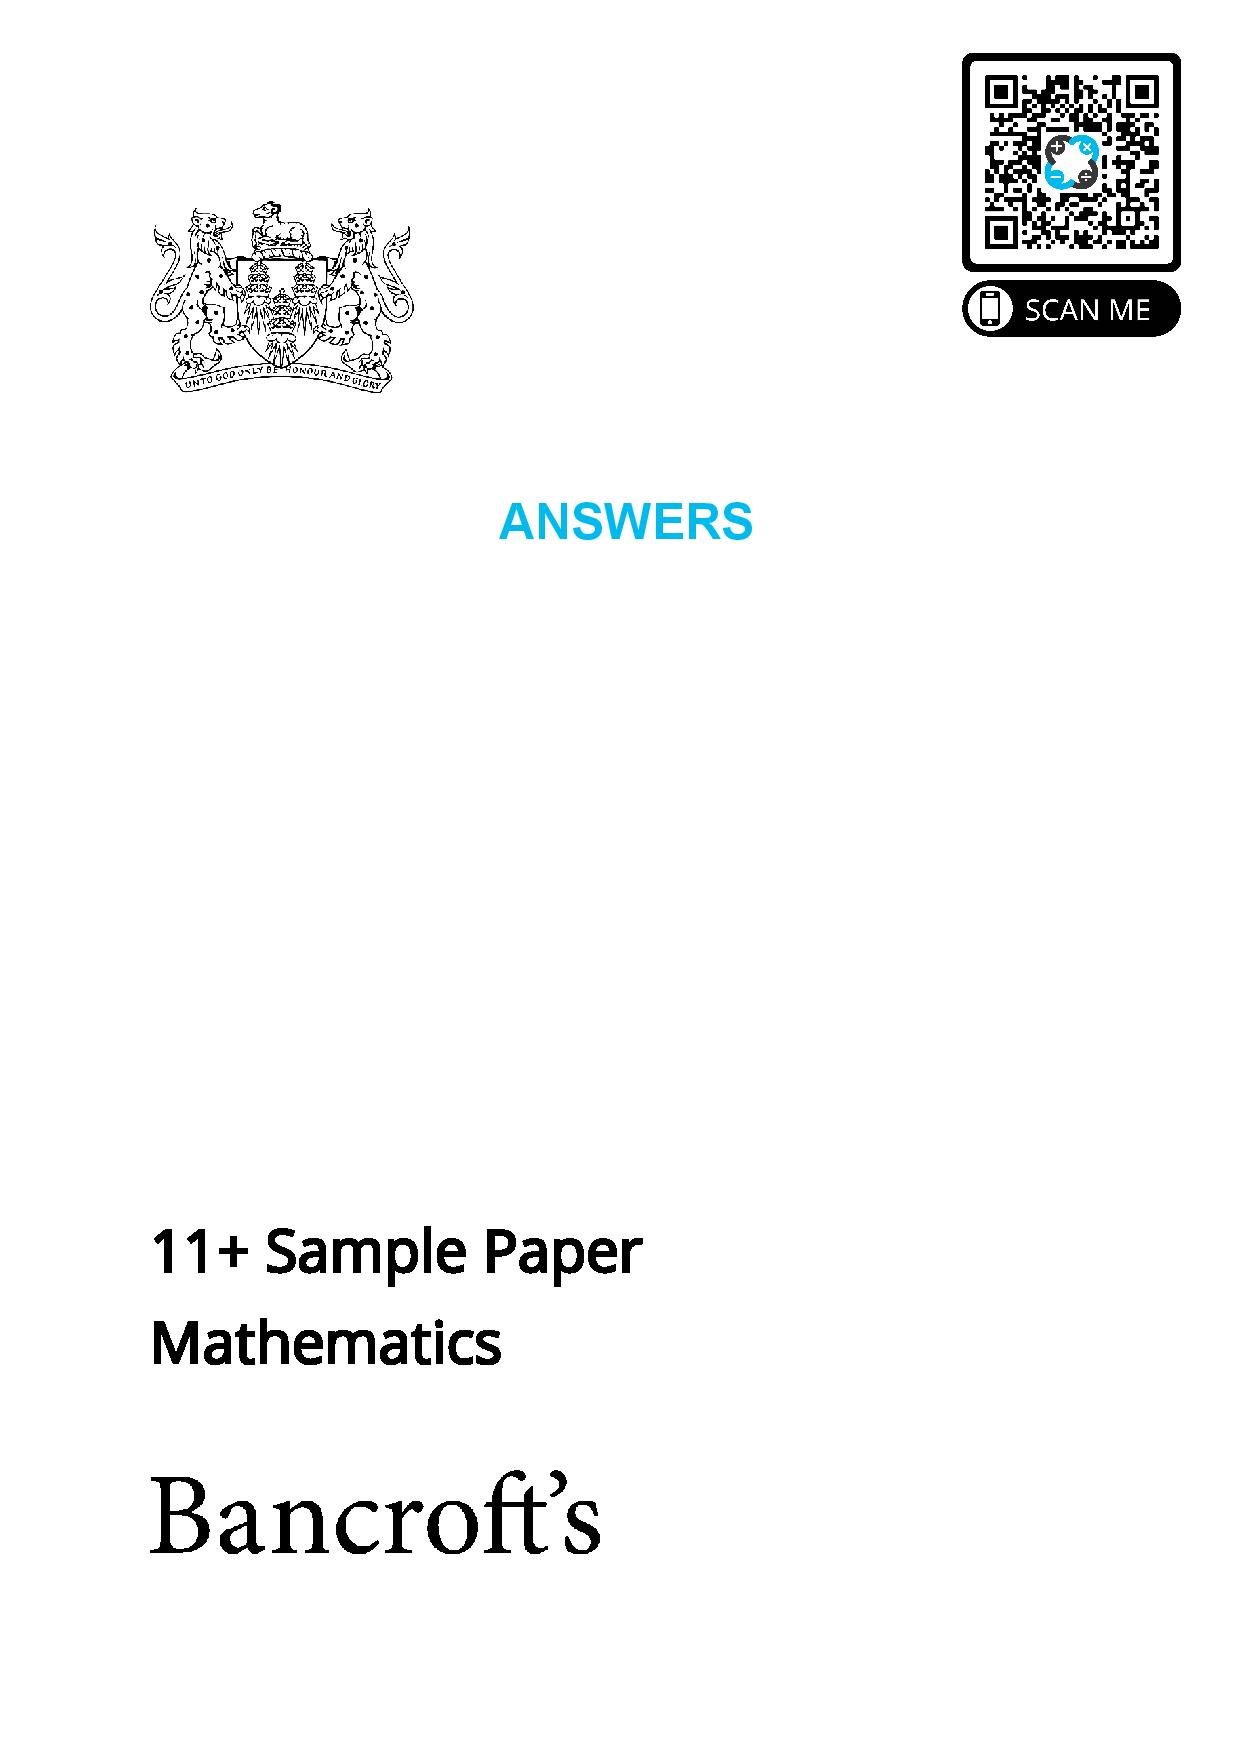 Bancrofts School 11 Plus Maths Sample Paper 2021 entry page 001